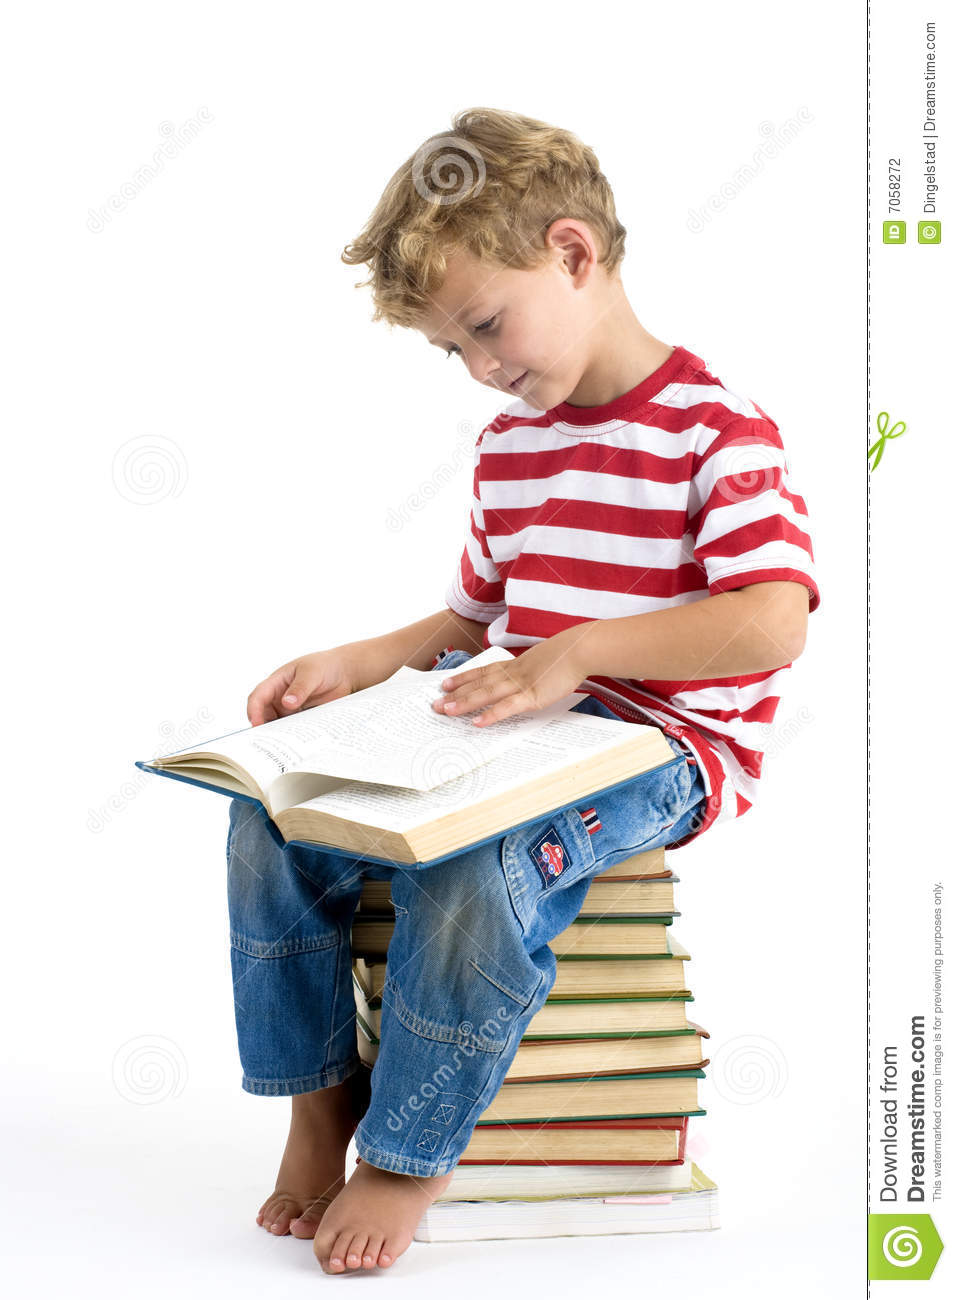 Five year old boy sitting on pile of books, reading.